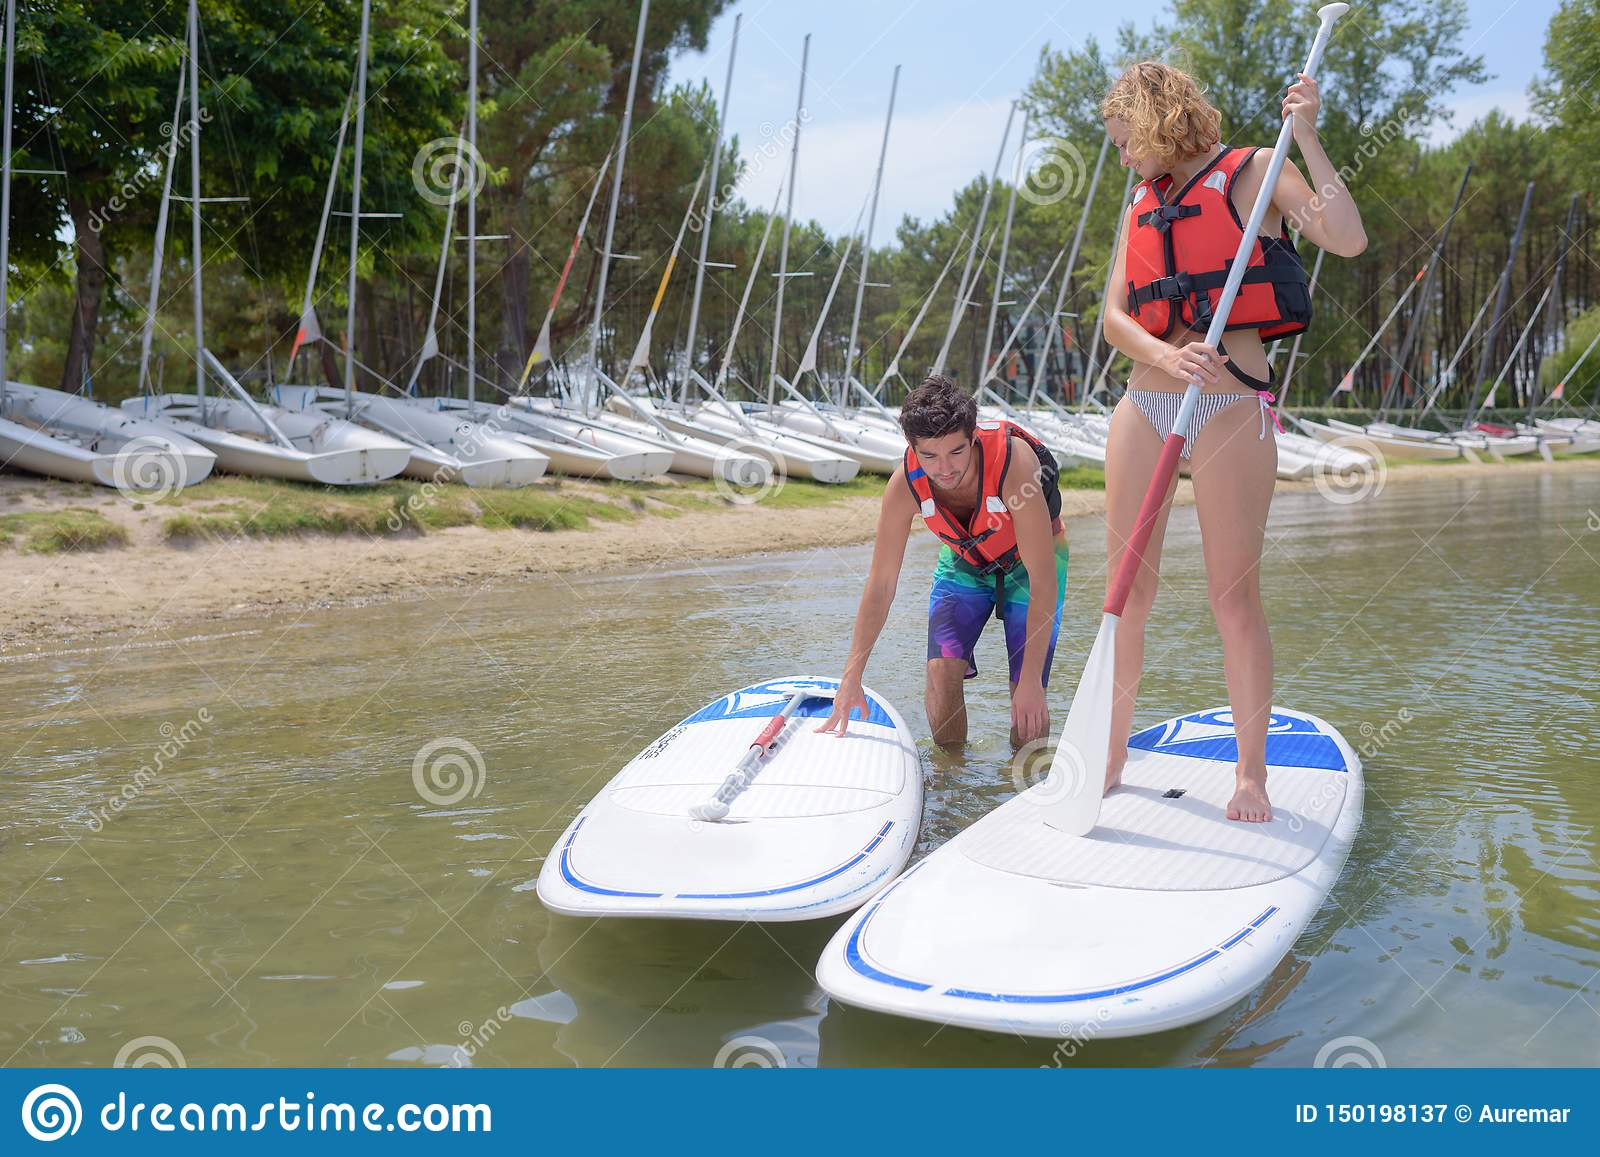 Couple setting off on windsurfing boards